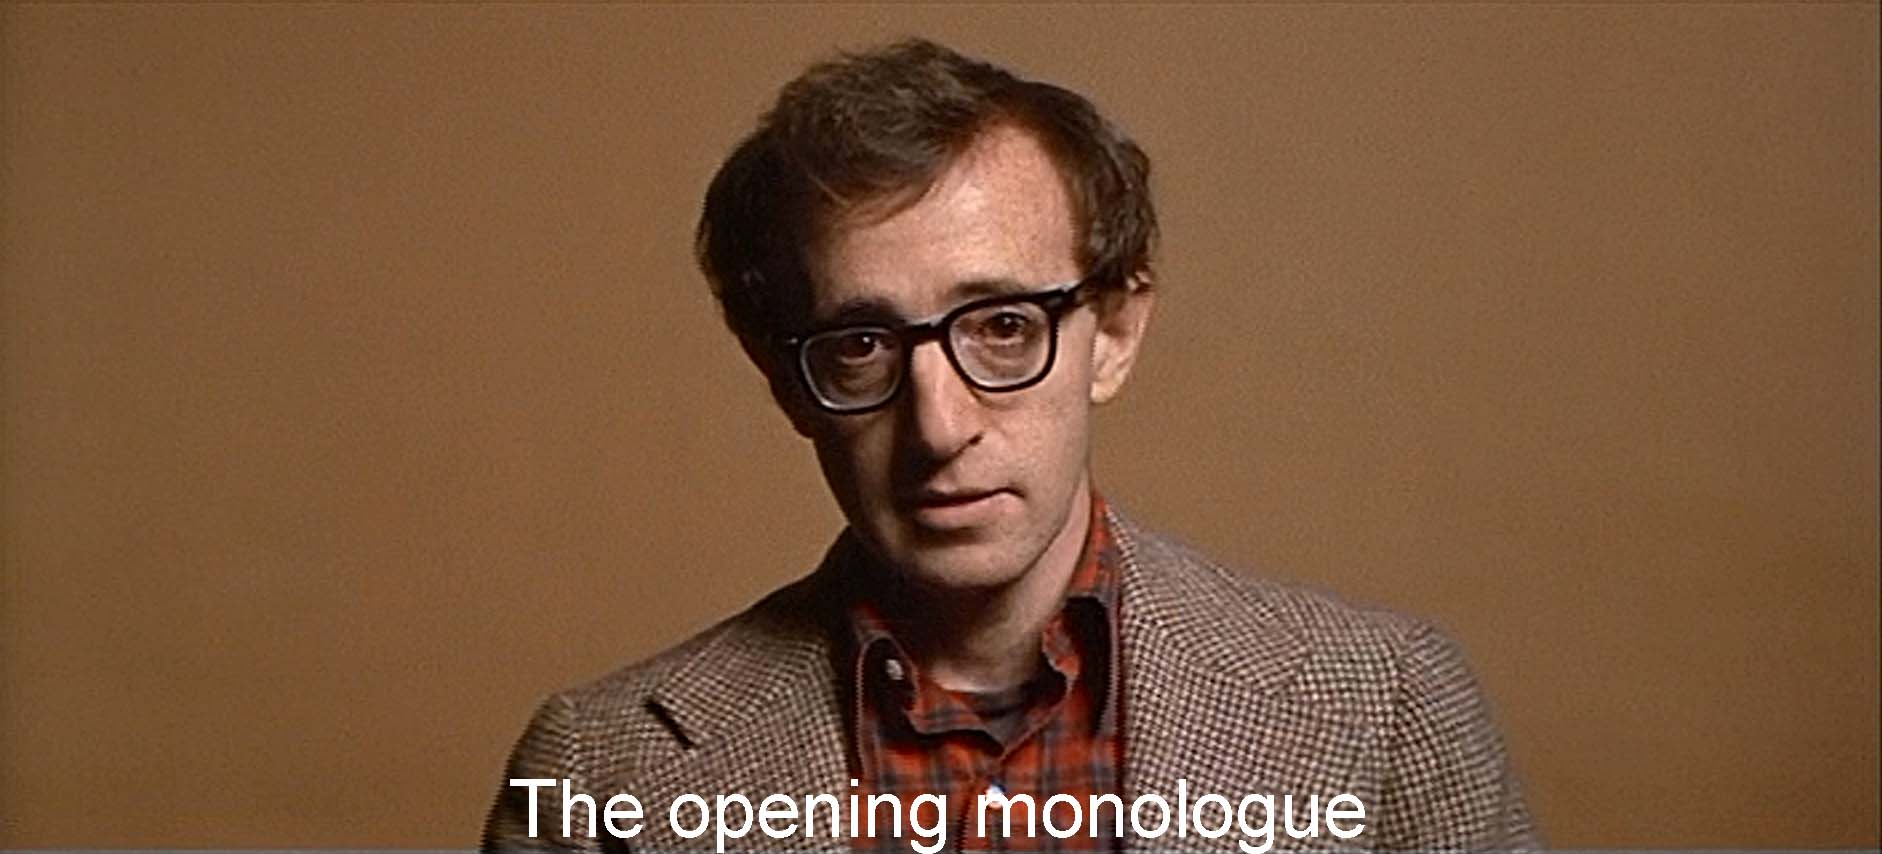 Alvy's opening monologue